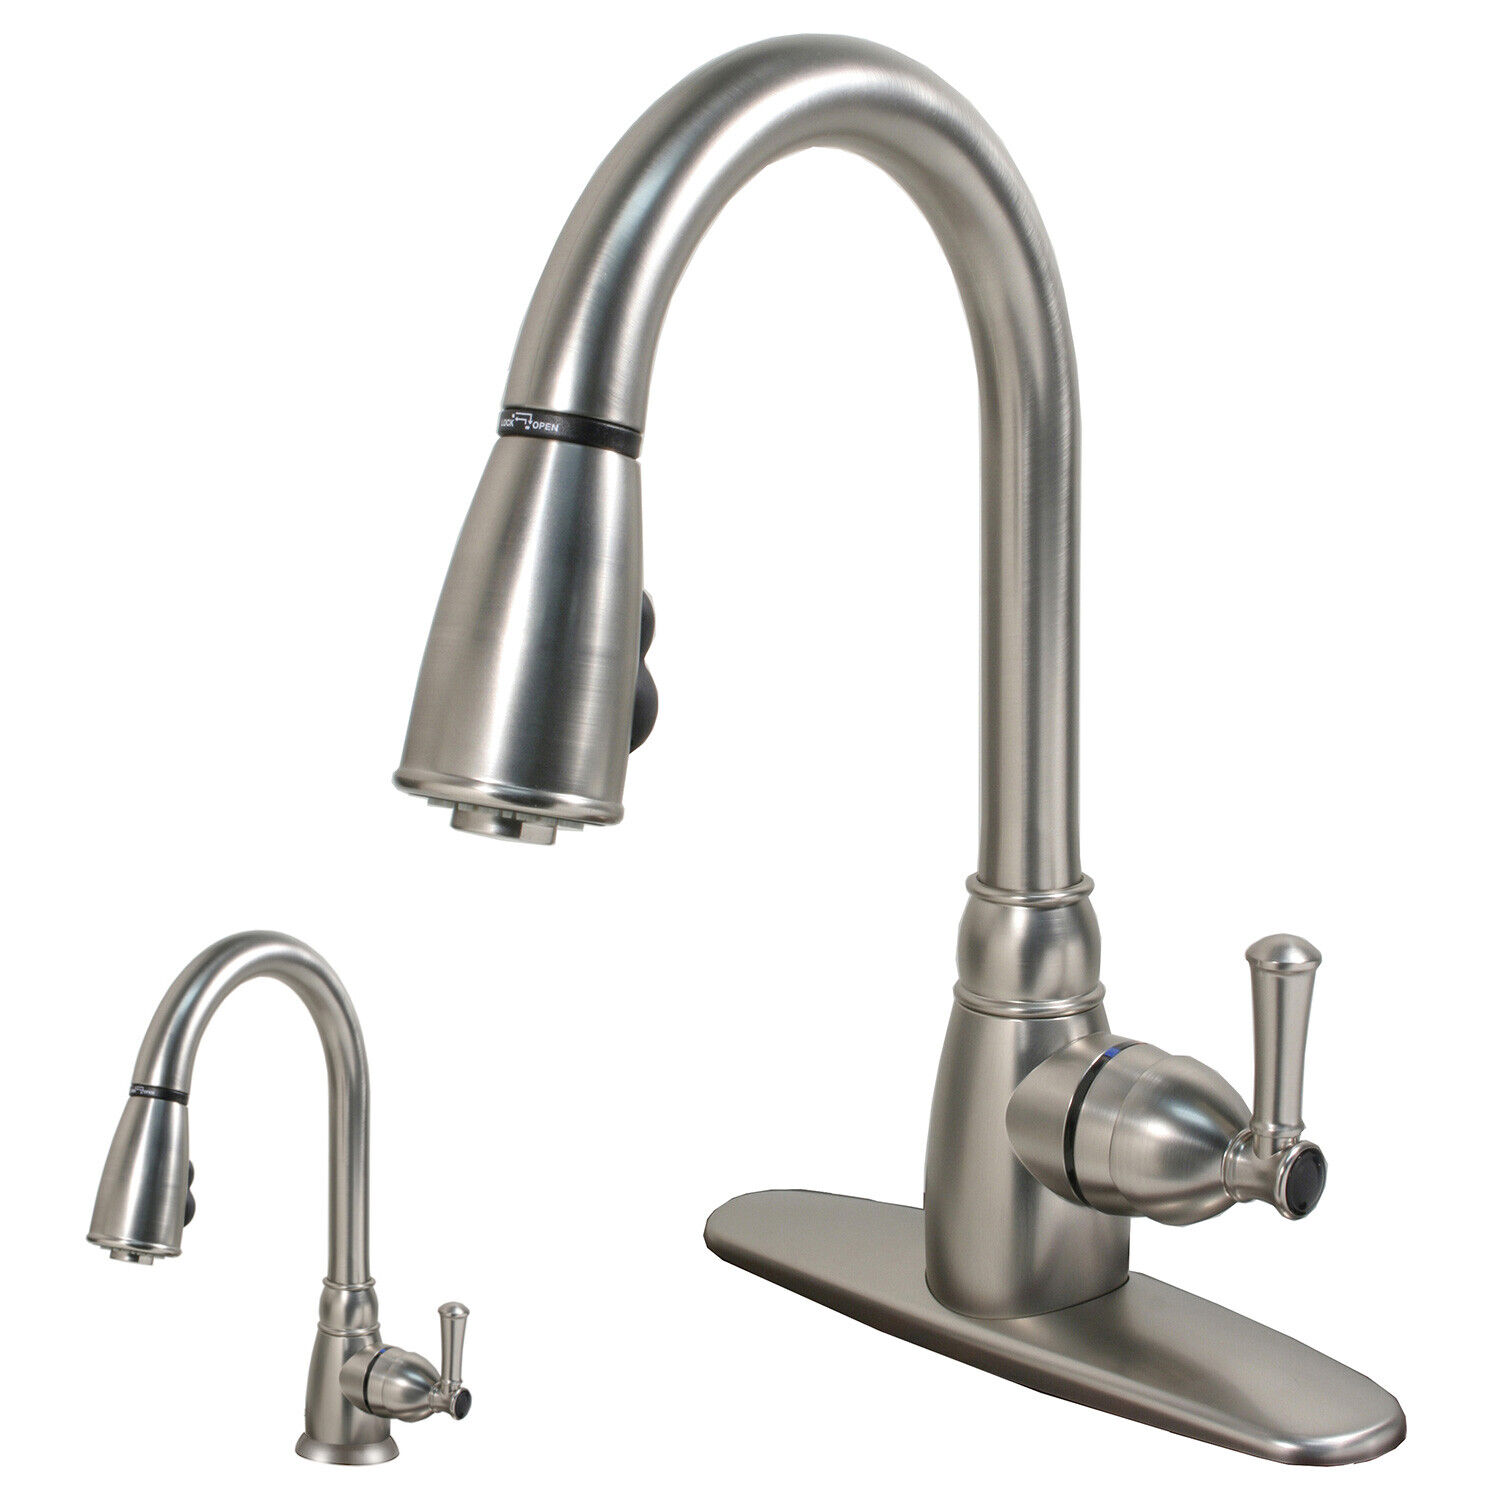 RV Mobile Home Camper Kitchen Faucet with Pull-Down Sprayer, Stainless Steel eBay Motors